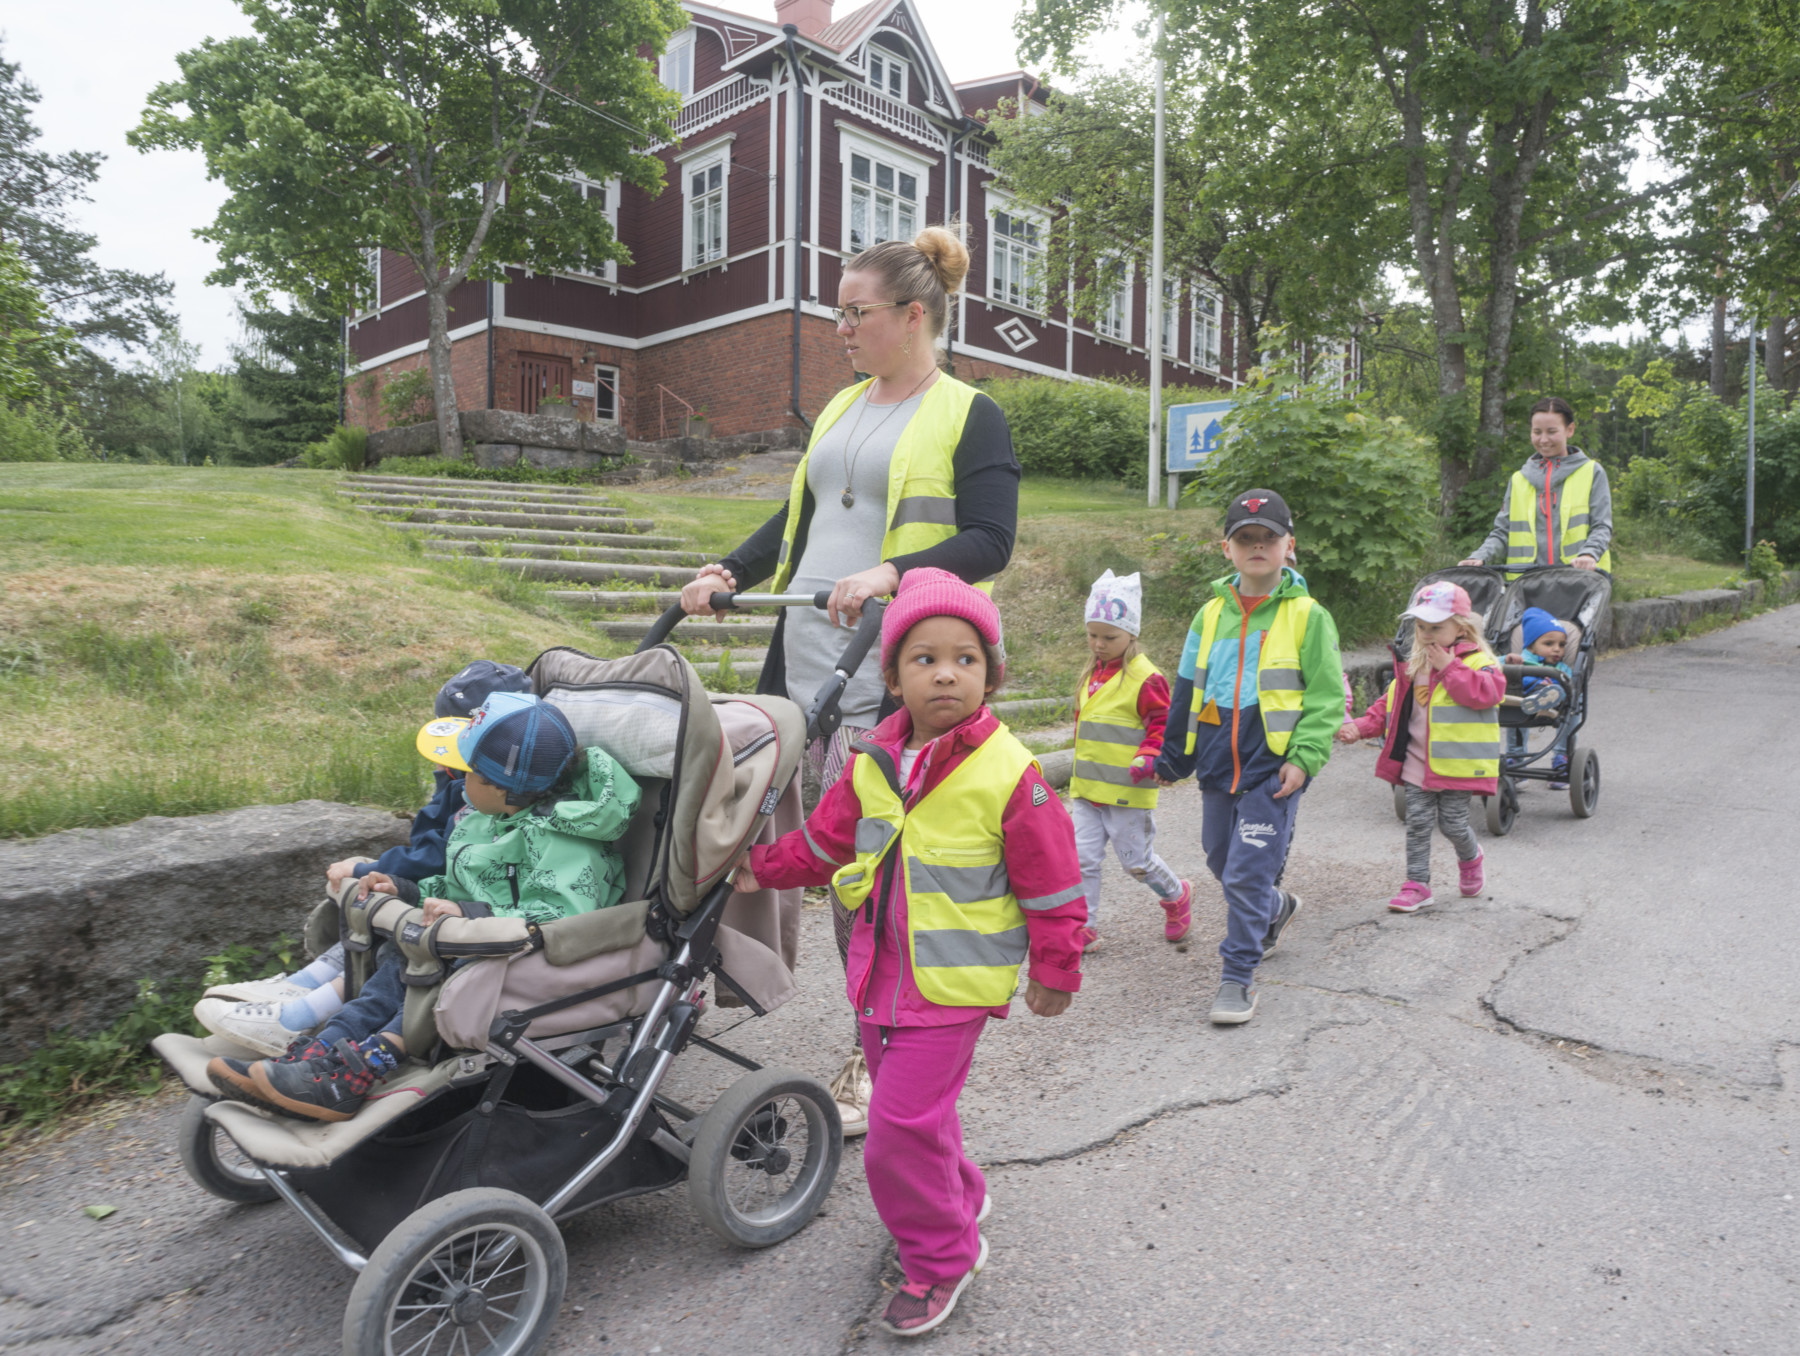 A group of daycare kids walking down the street in reflective vests with their caretaker